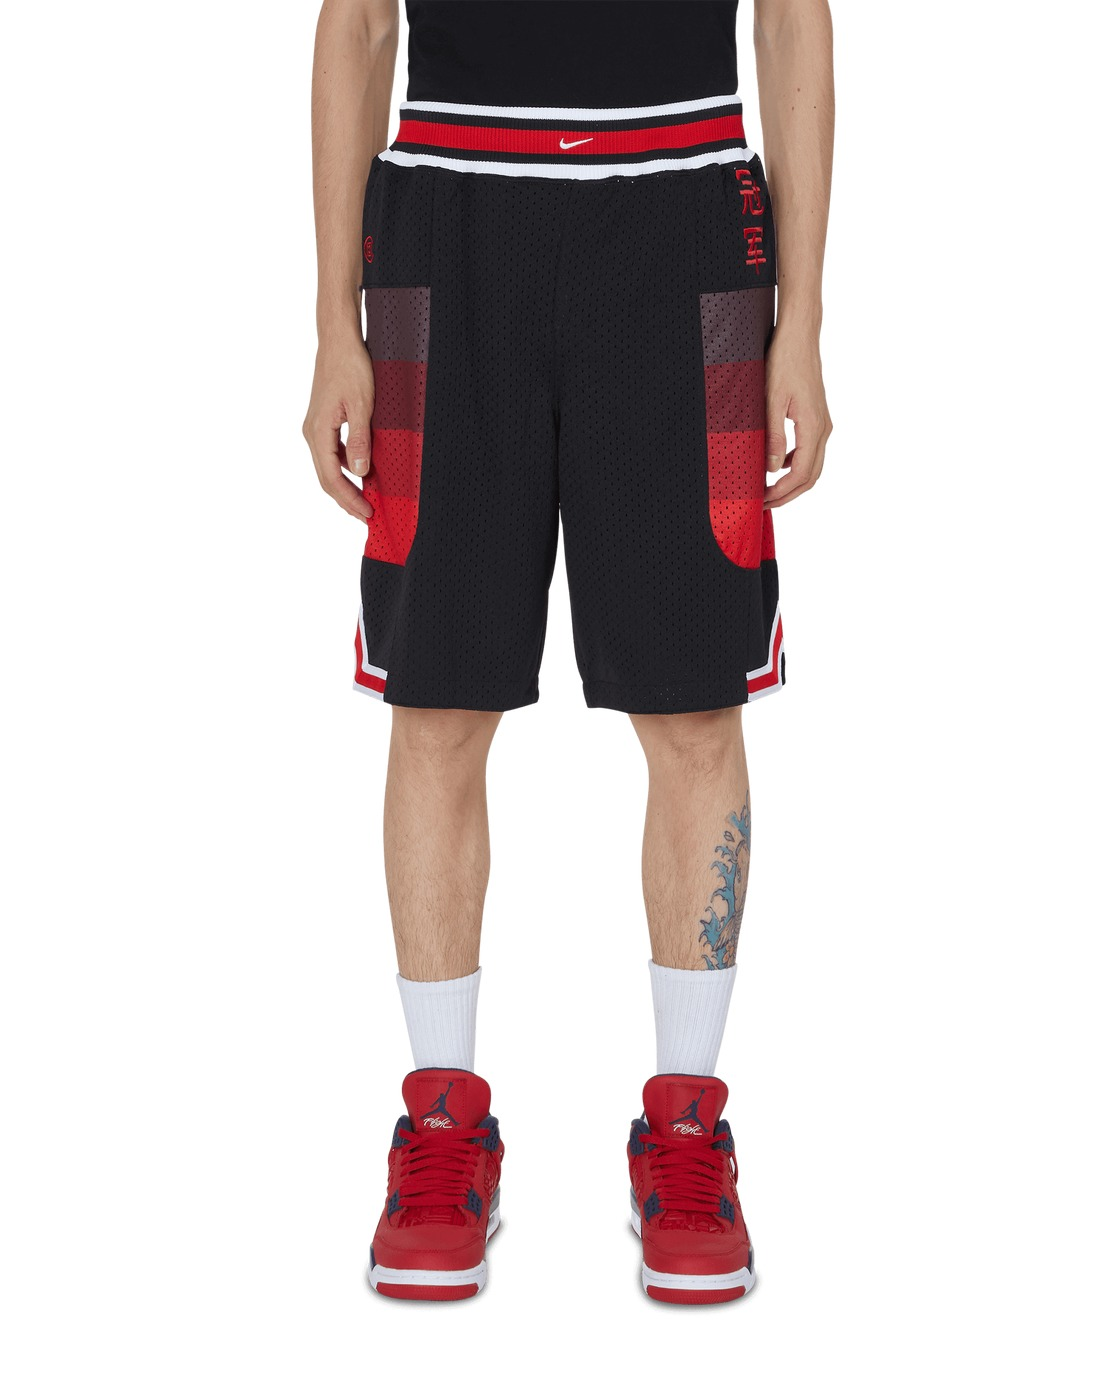 Nike Special Project Clot Ge Mesh Shorts Black/University Red